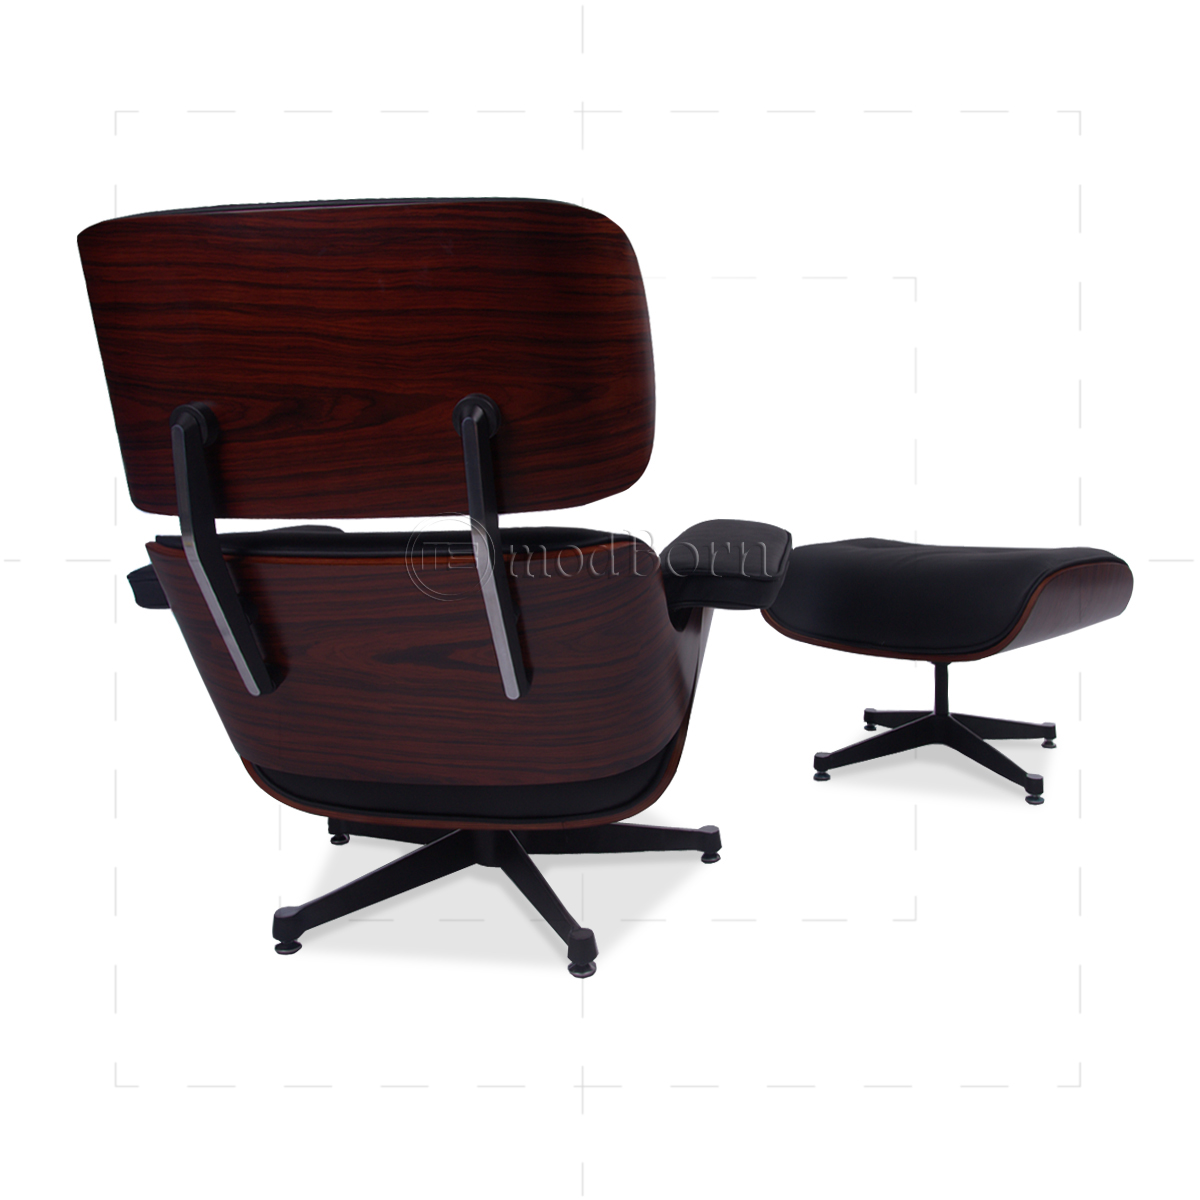 Eames style lounge chair and ottoman black leather for Eames replica erfahrungen